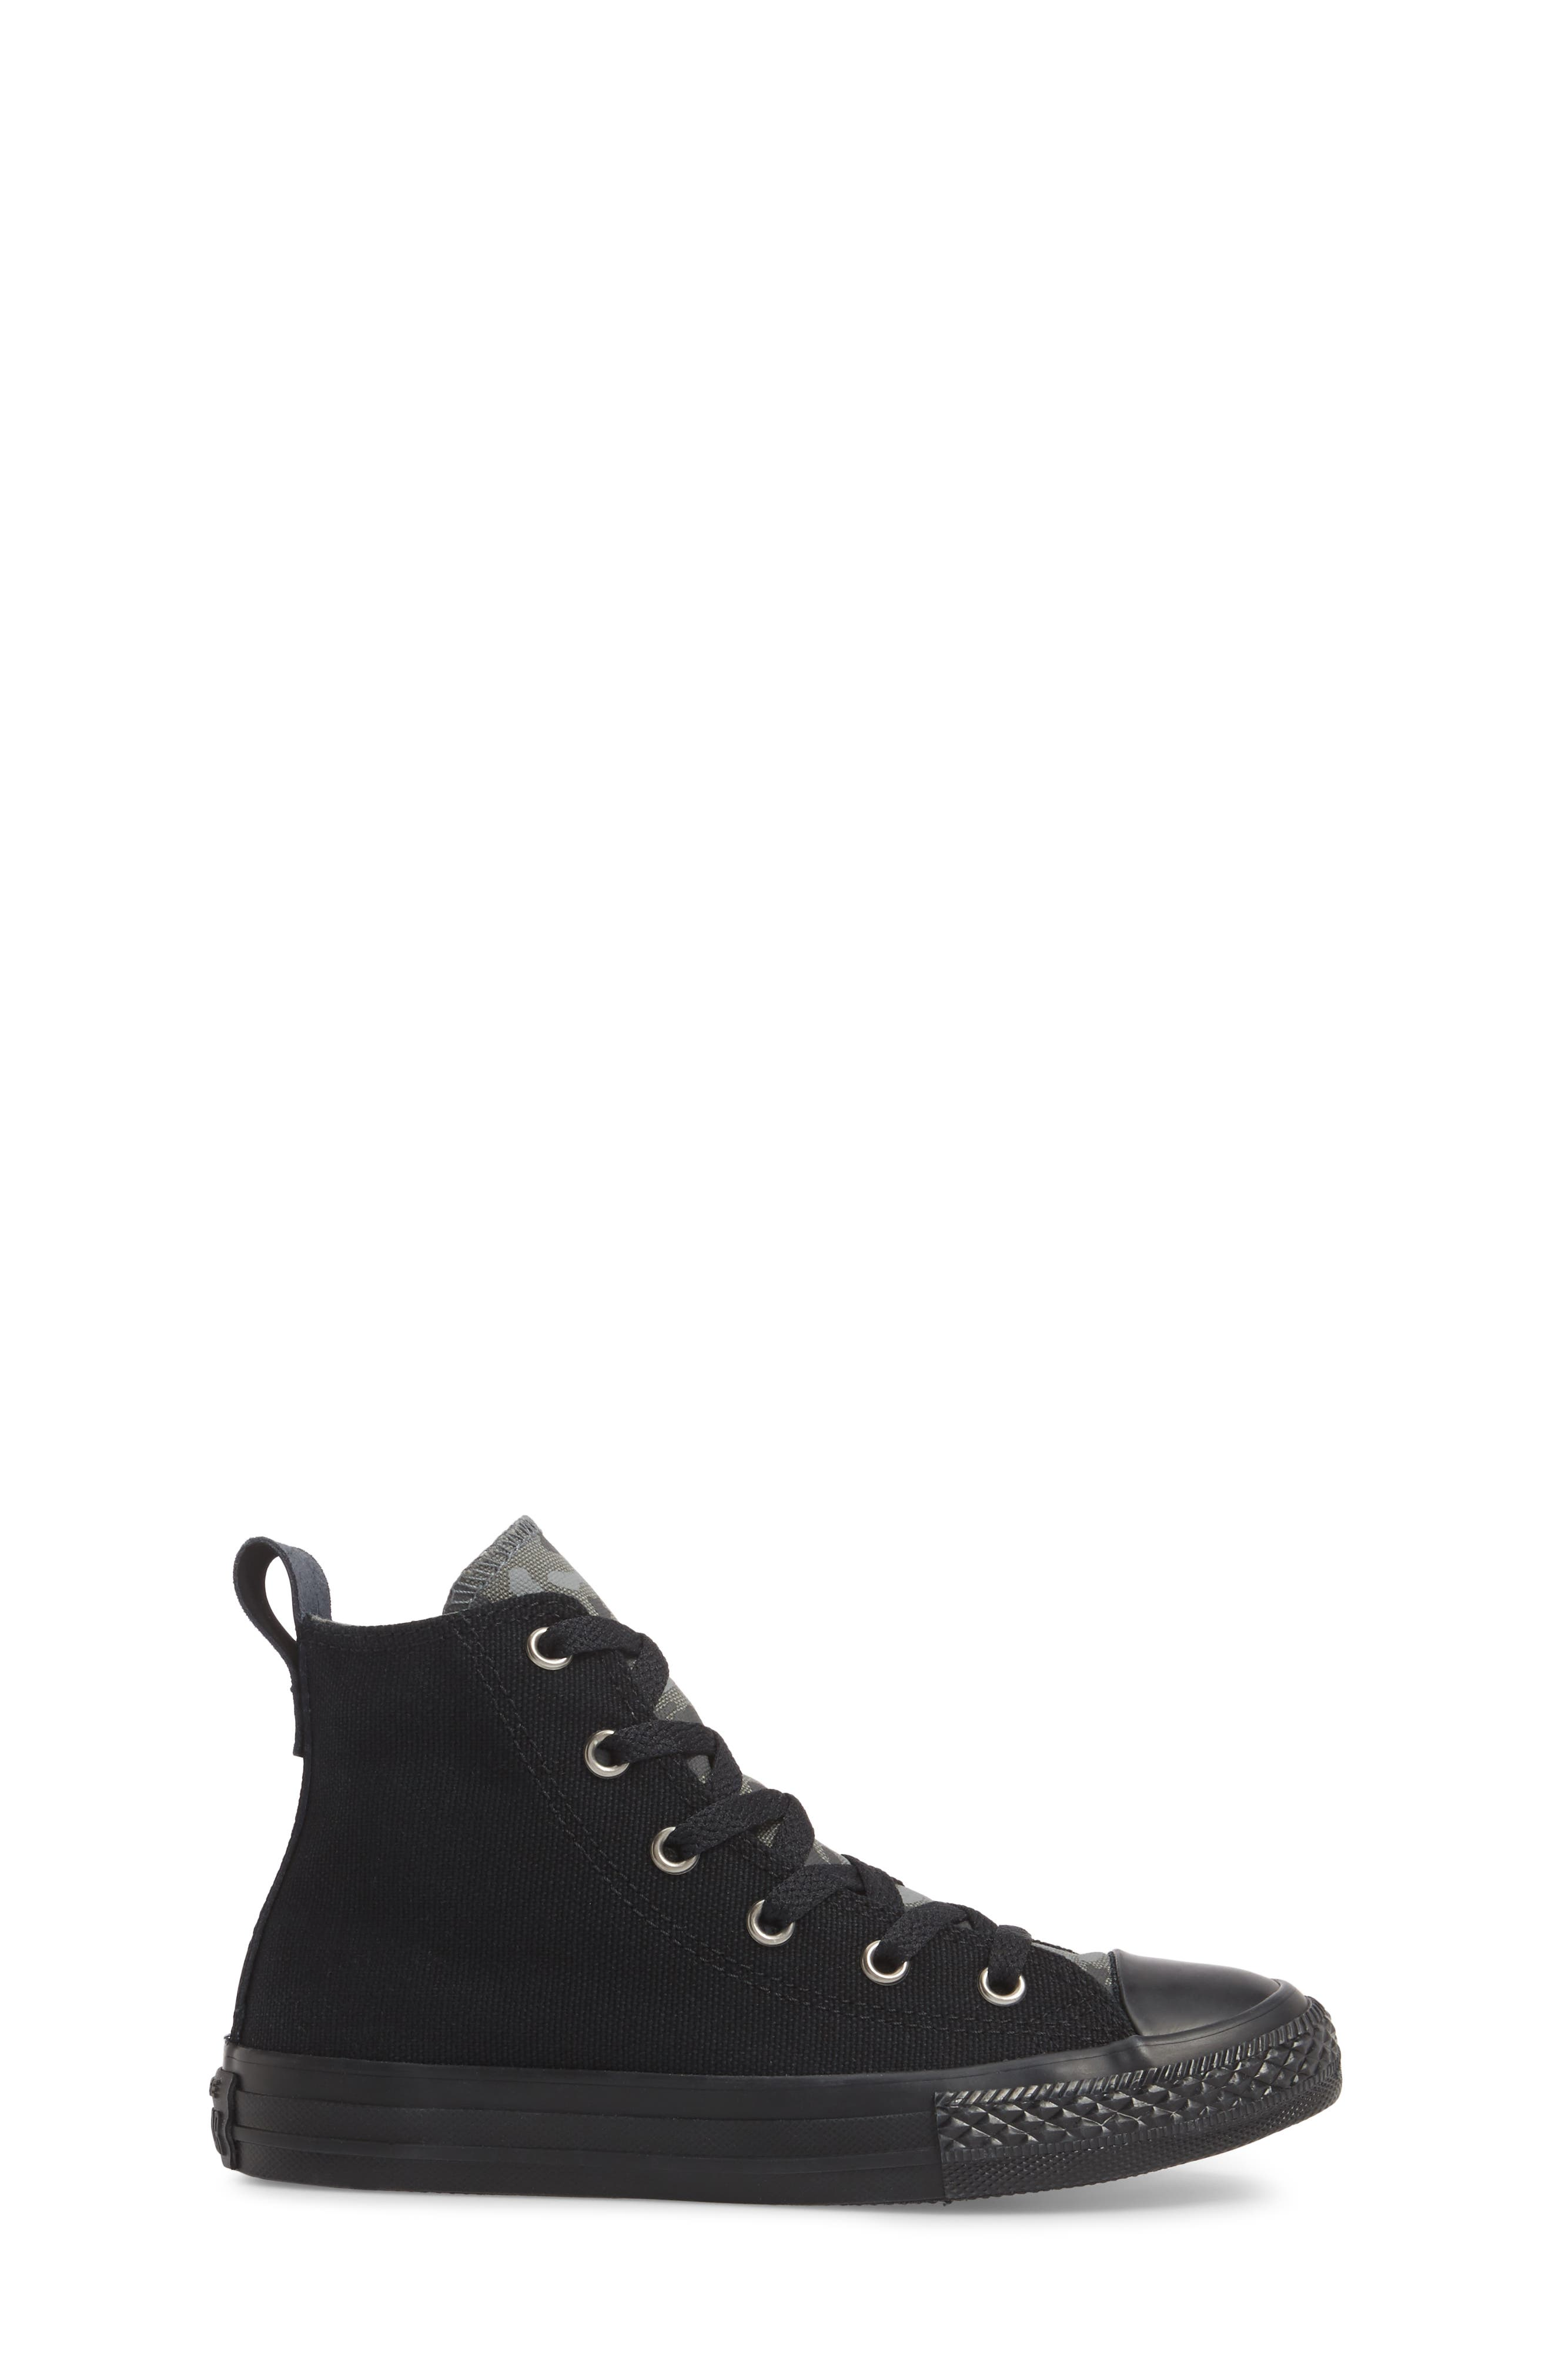 Chuck Taylor<sup>®</sup> All Star<sup>®</sup> Camo High Top Sneaker,                             Alternate thumbnail 3, color,                             Black